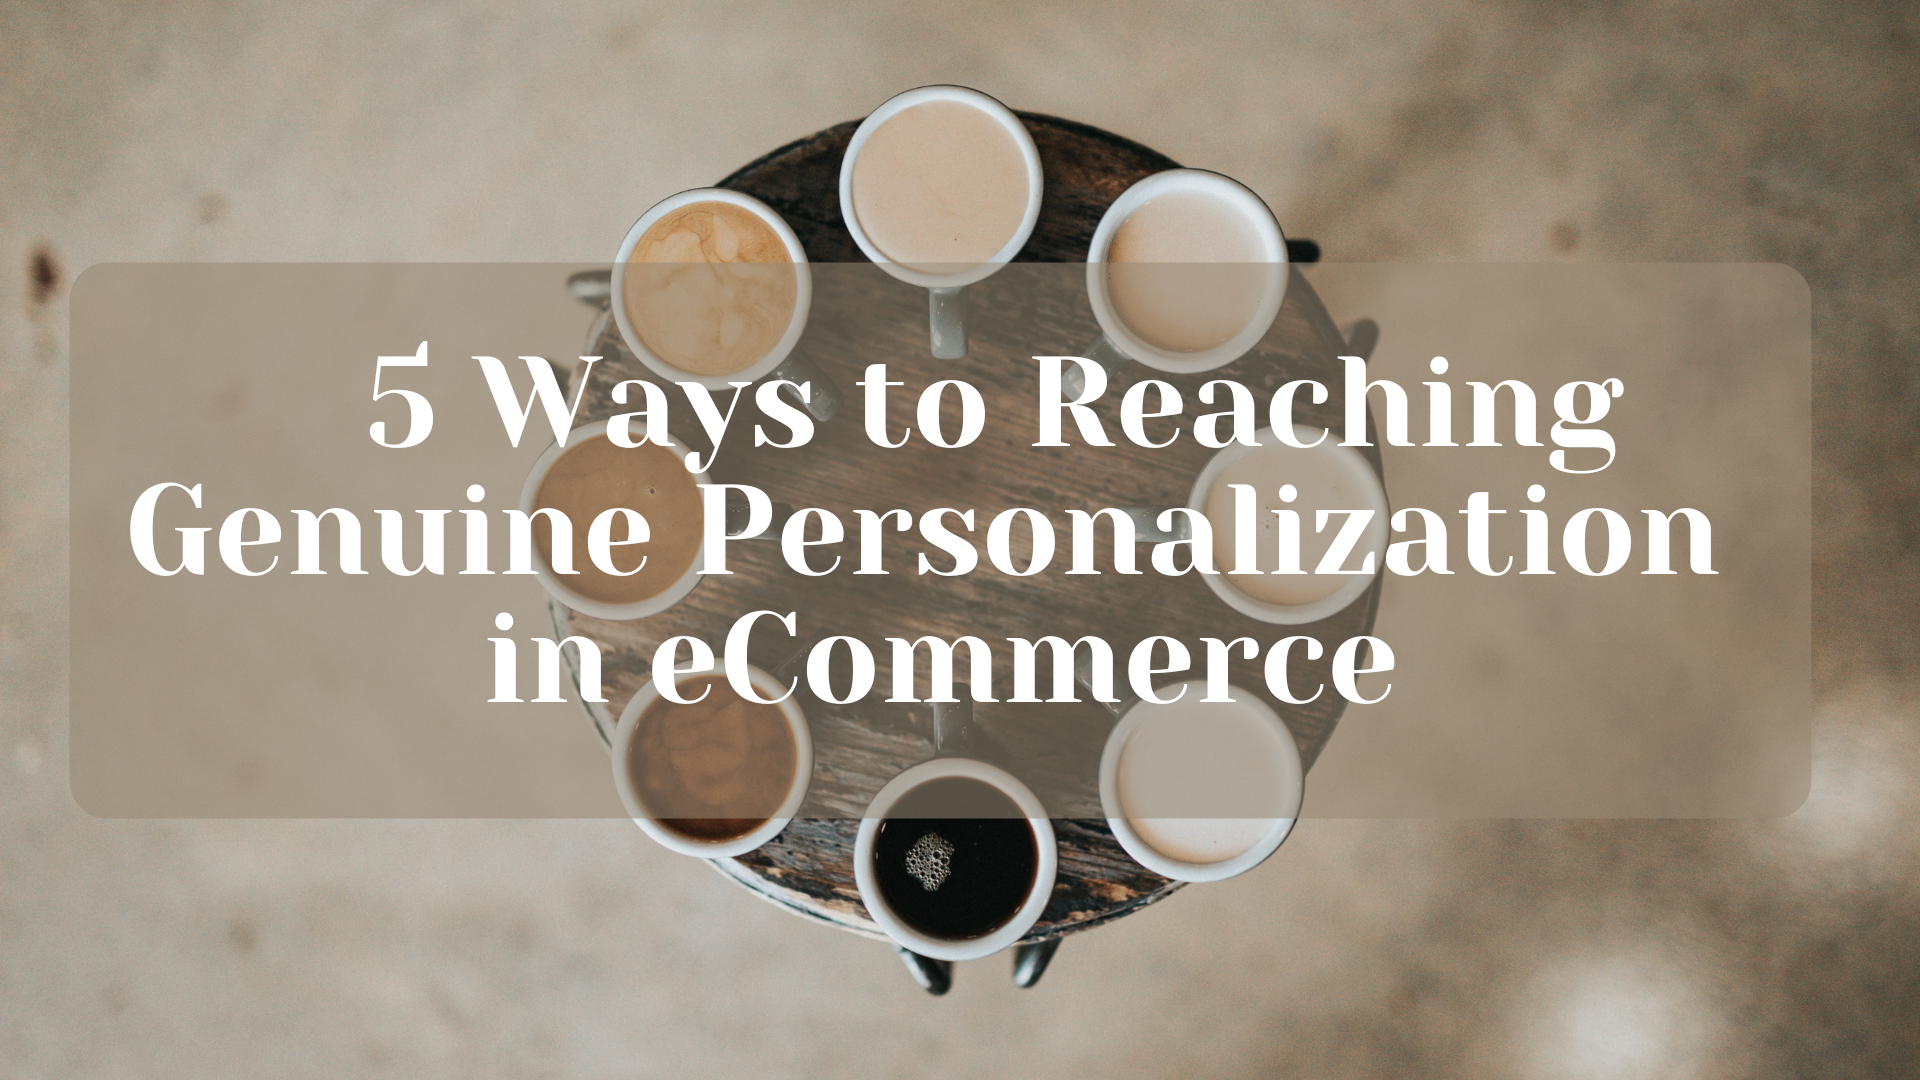 Five Ways to Reaching Genuine Personalization in eCommerce